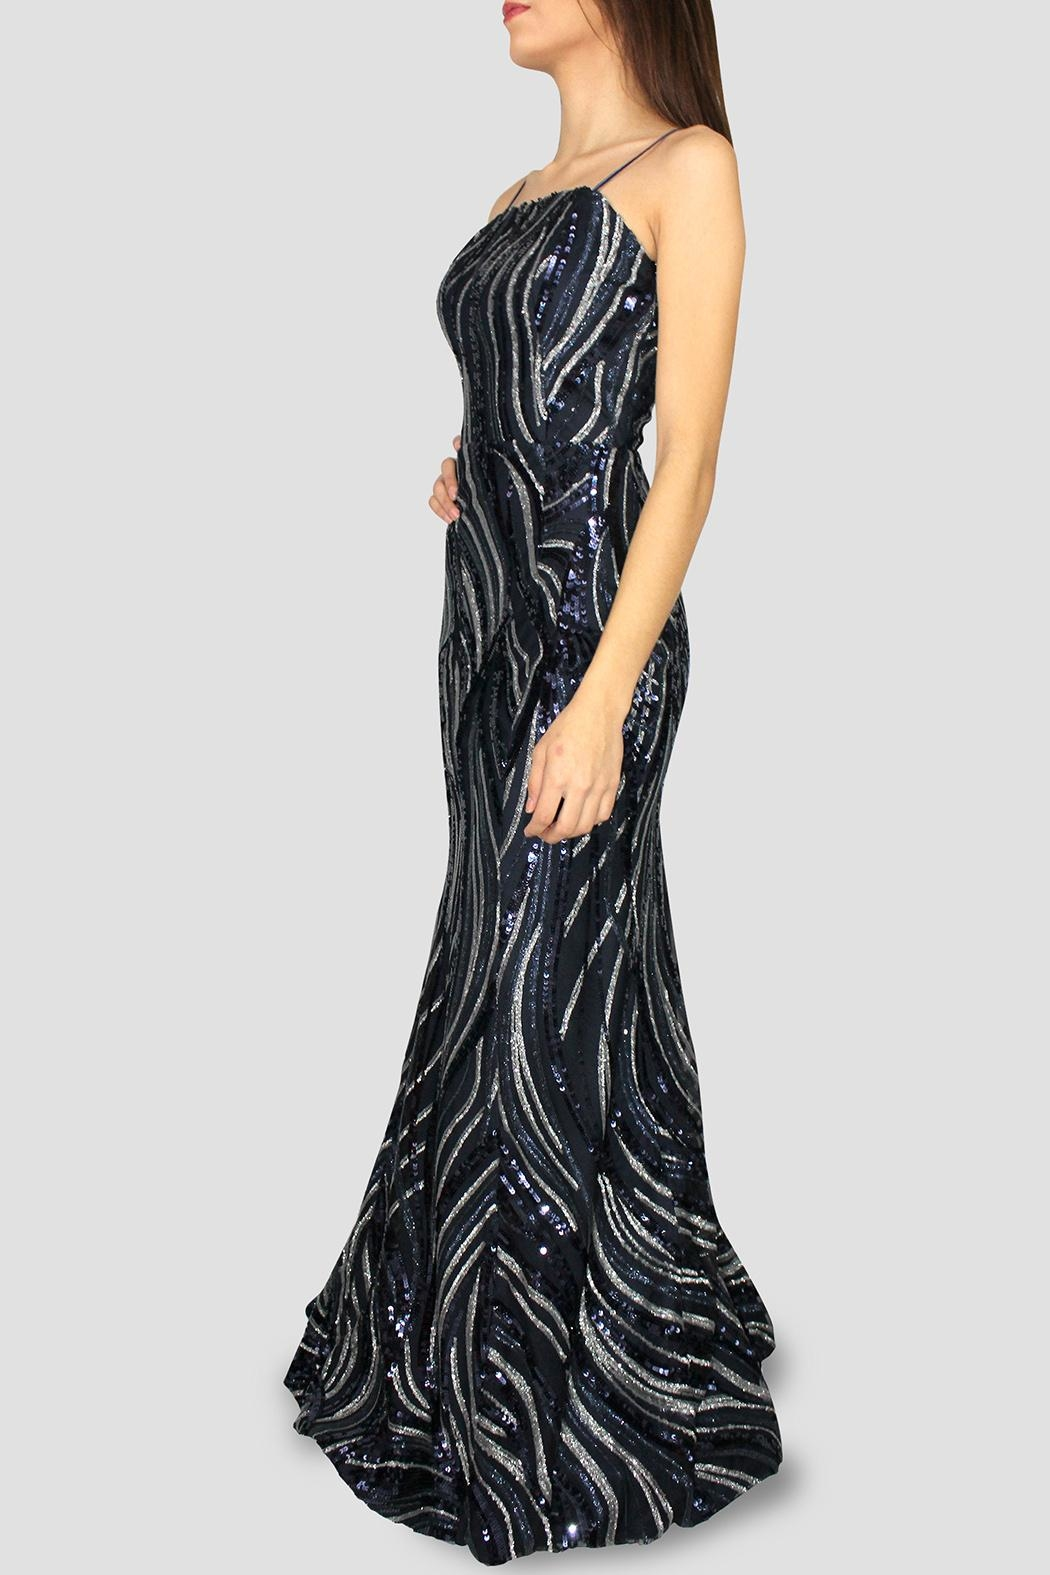 SoZu Strapless Lineal Sequin - Front Full Image